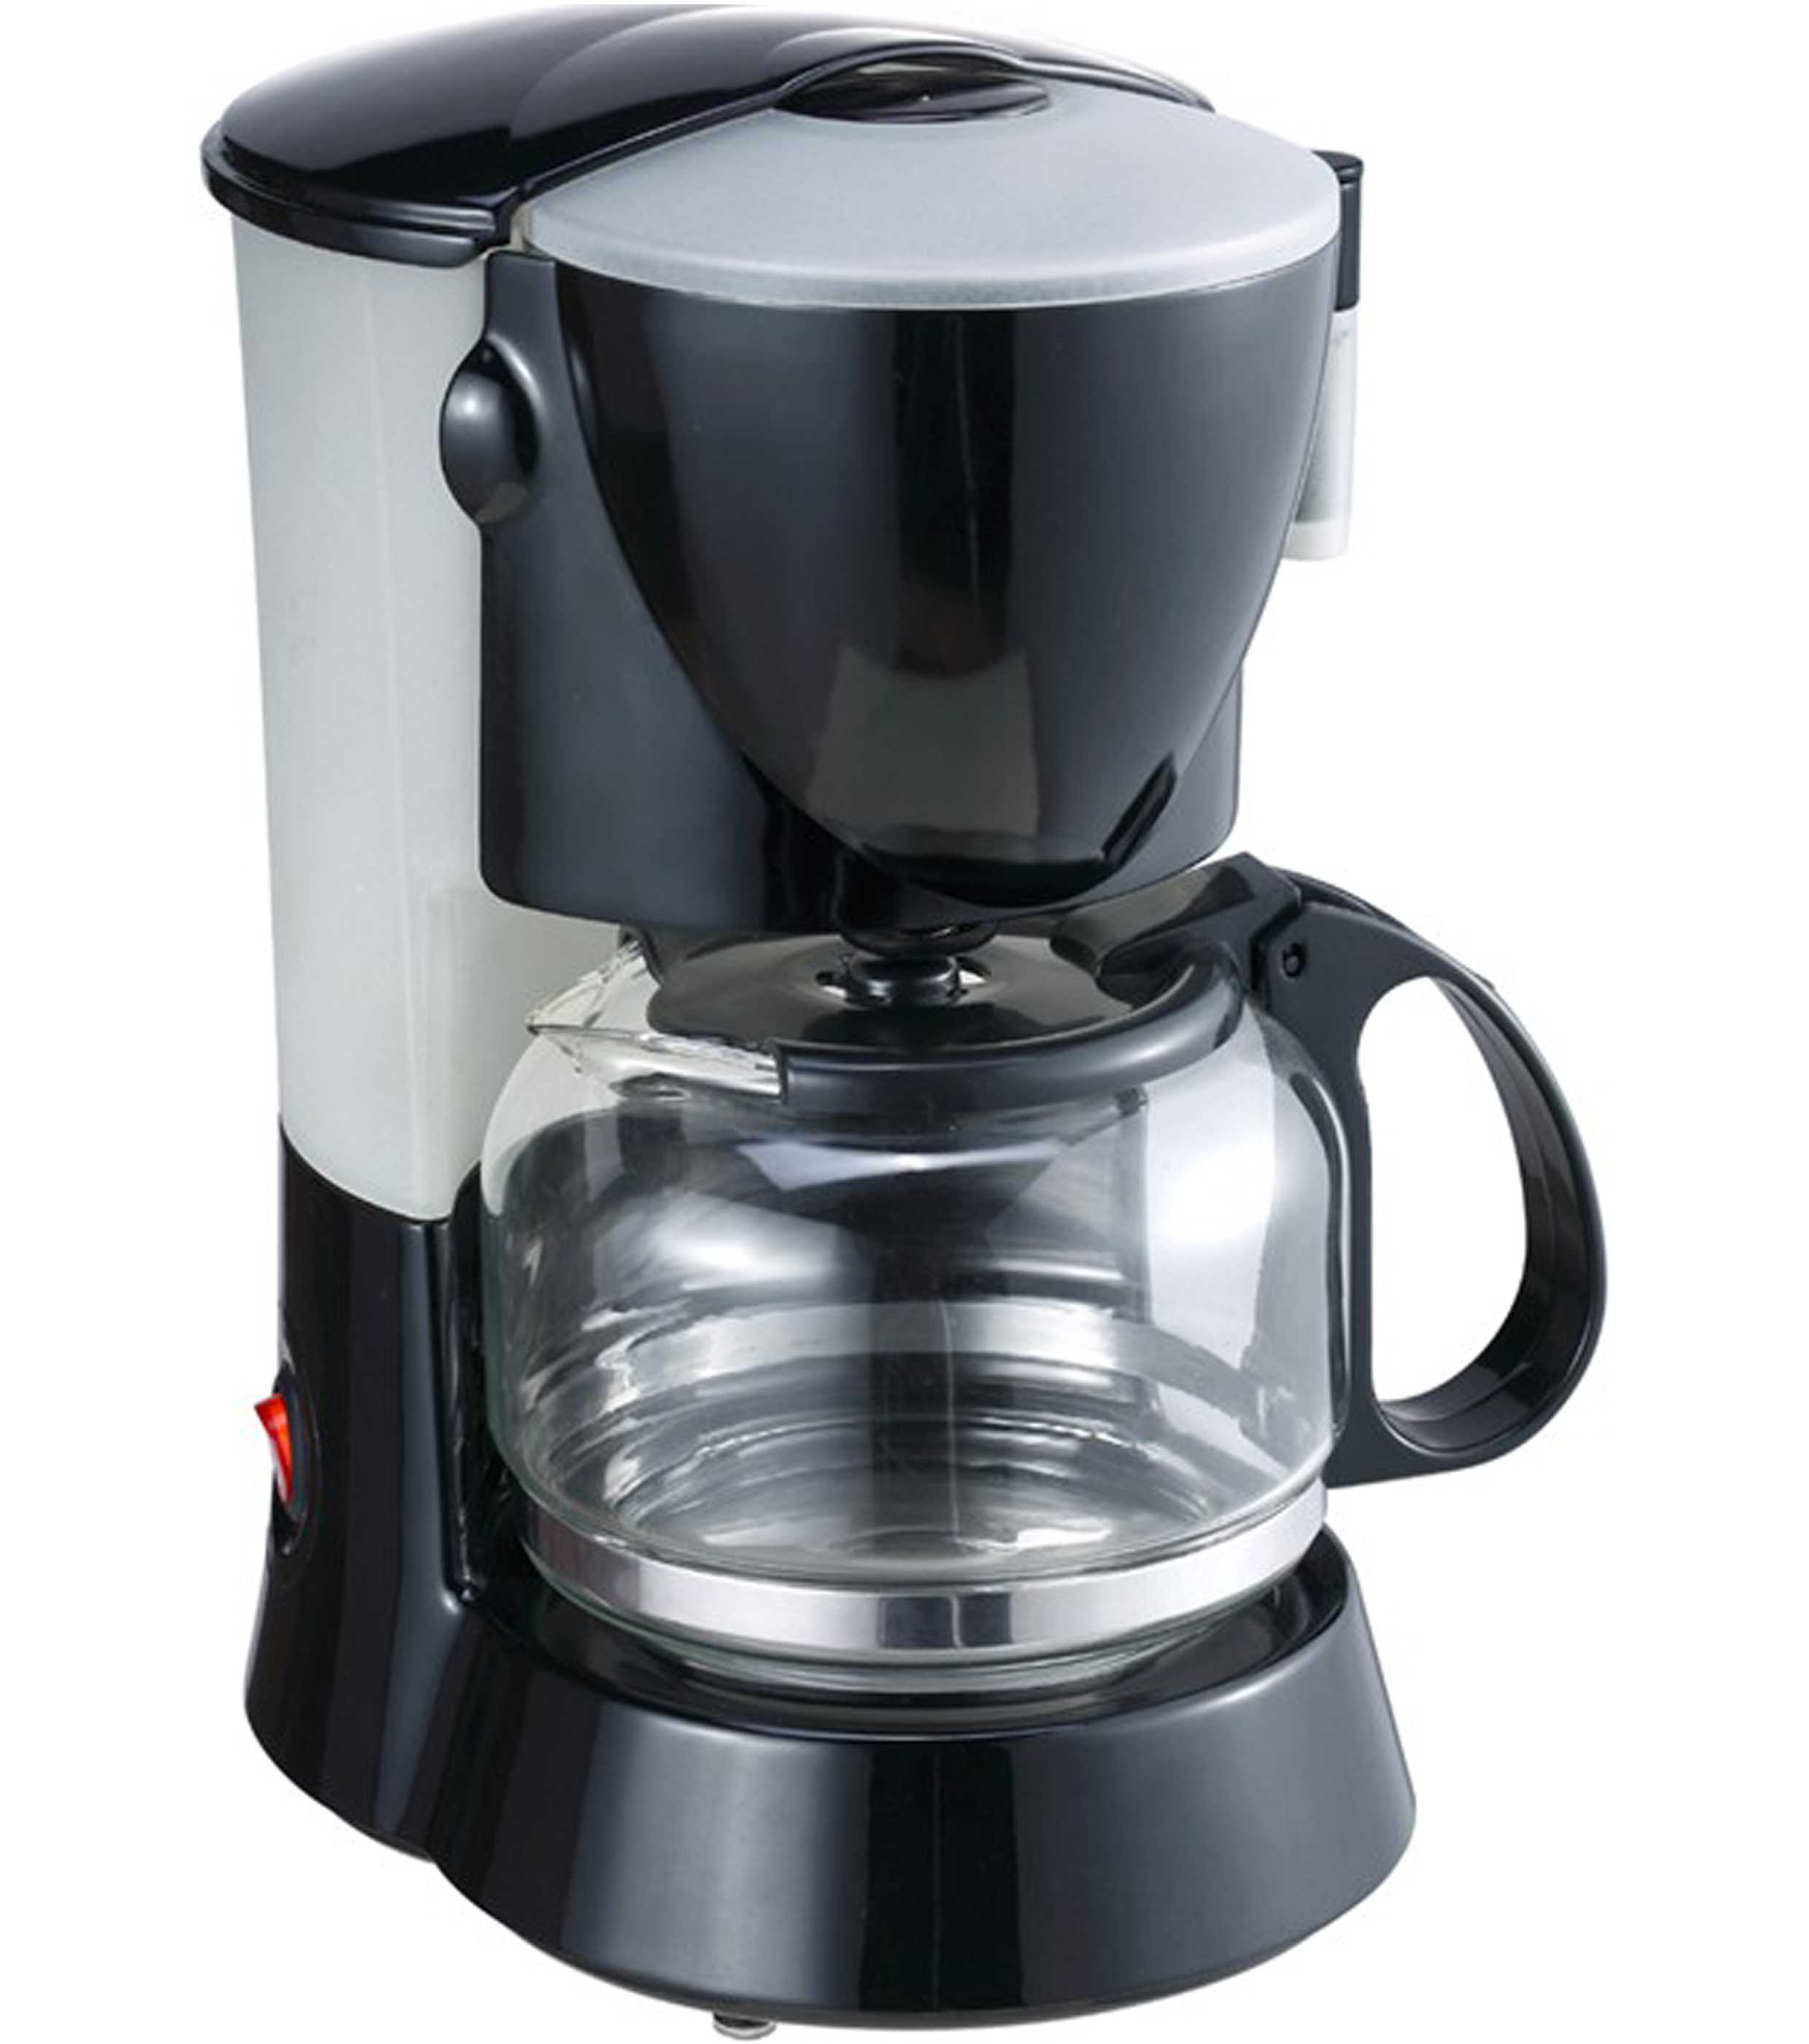 Drip Coffee Maker Tips : Drip-Coffee-Maker-CM-625- Drinking Tips for Teens